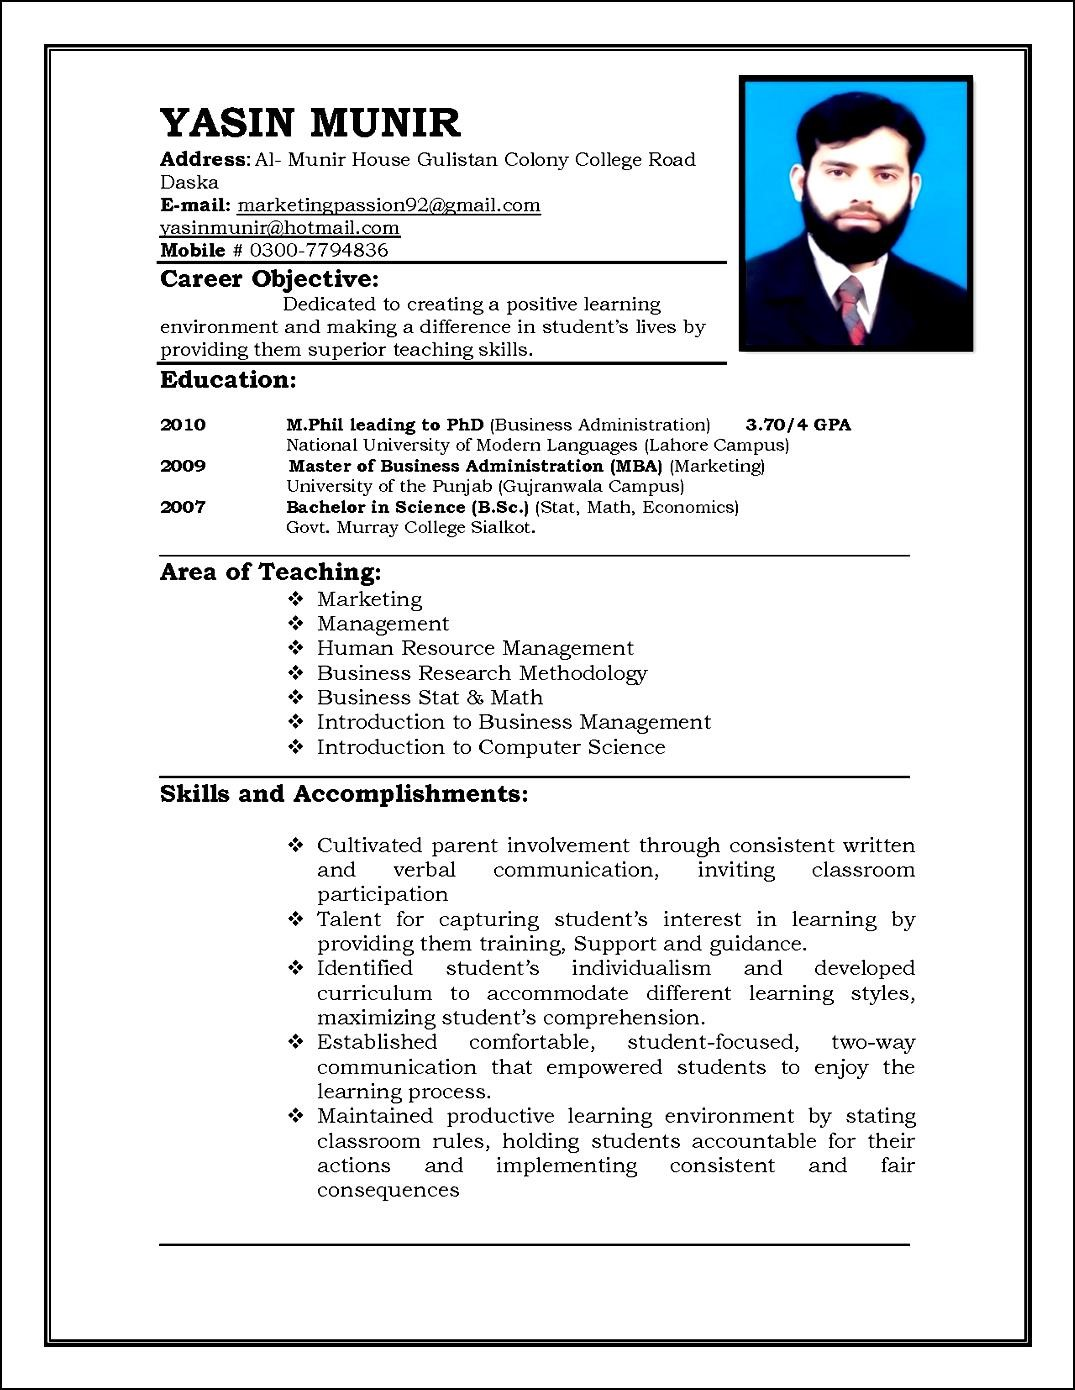 curriculum vitae resume samples for teachers sample customer curriculum vitae resume samples for teachers curriculum vitae daniel a woods edd curriculum vitae for teachers